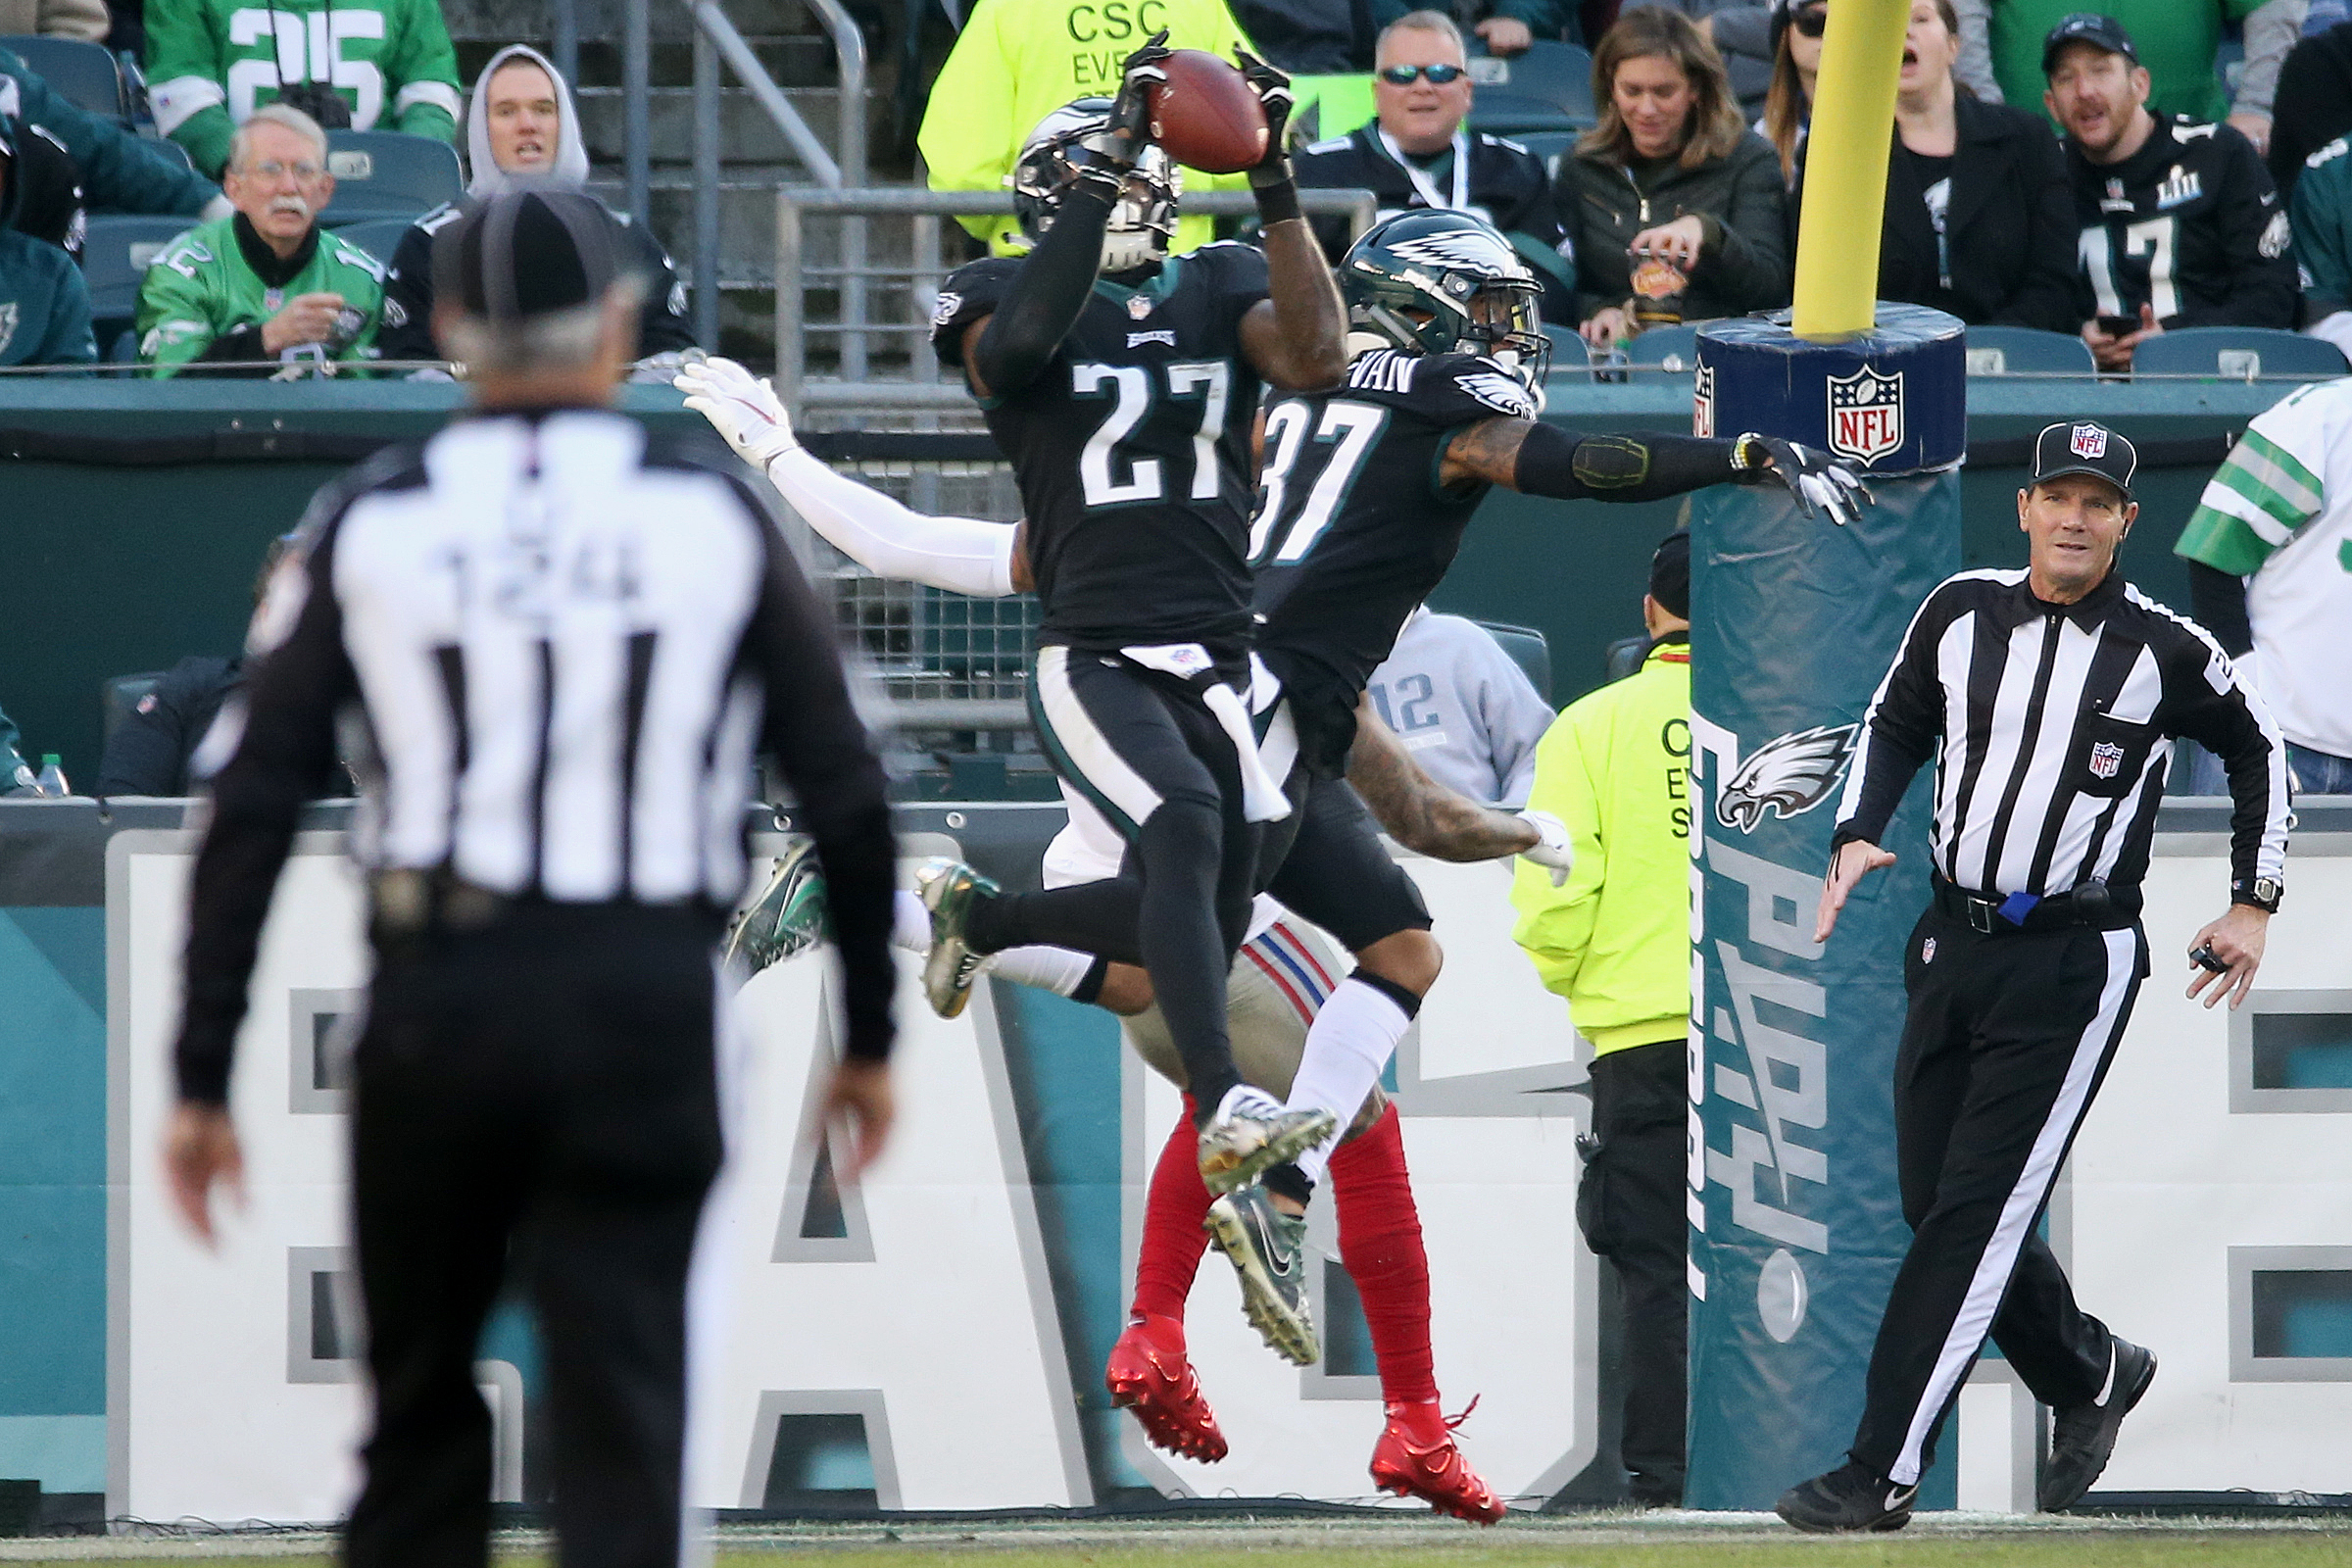 Eagles safety Malcolm Jenkins (27) intercepts a pass at the end of the second quarter of a game against the New York Giants at Lincoln Financial Field in South Philadelphia on Sunday, Nov. 25, 2018.